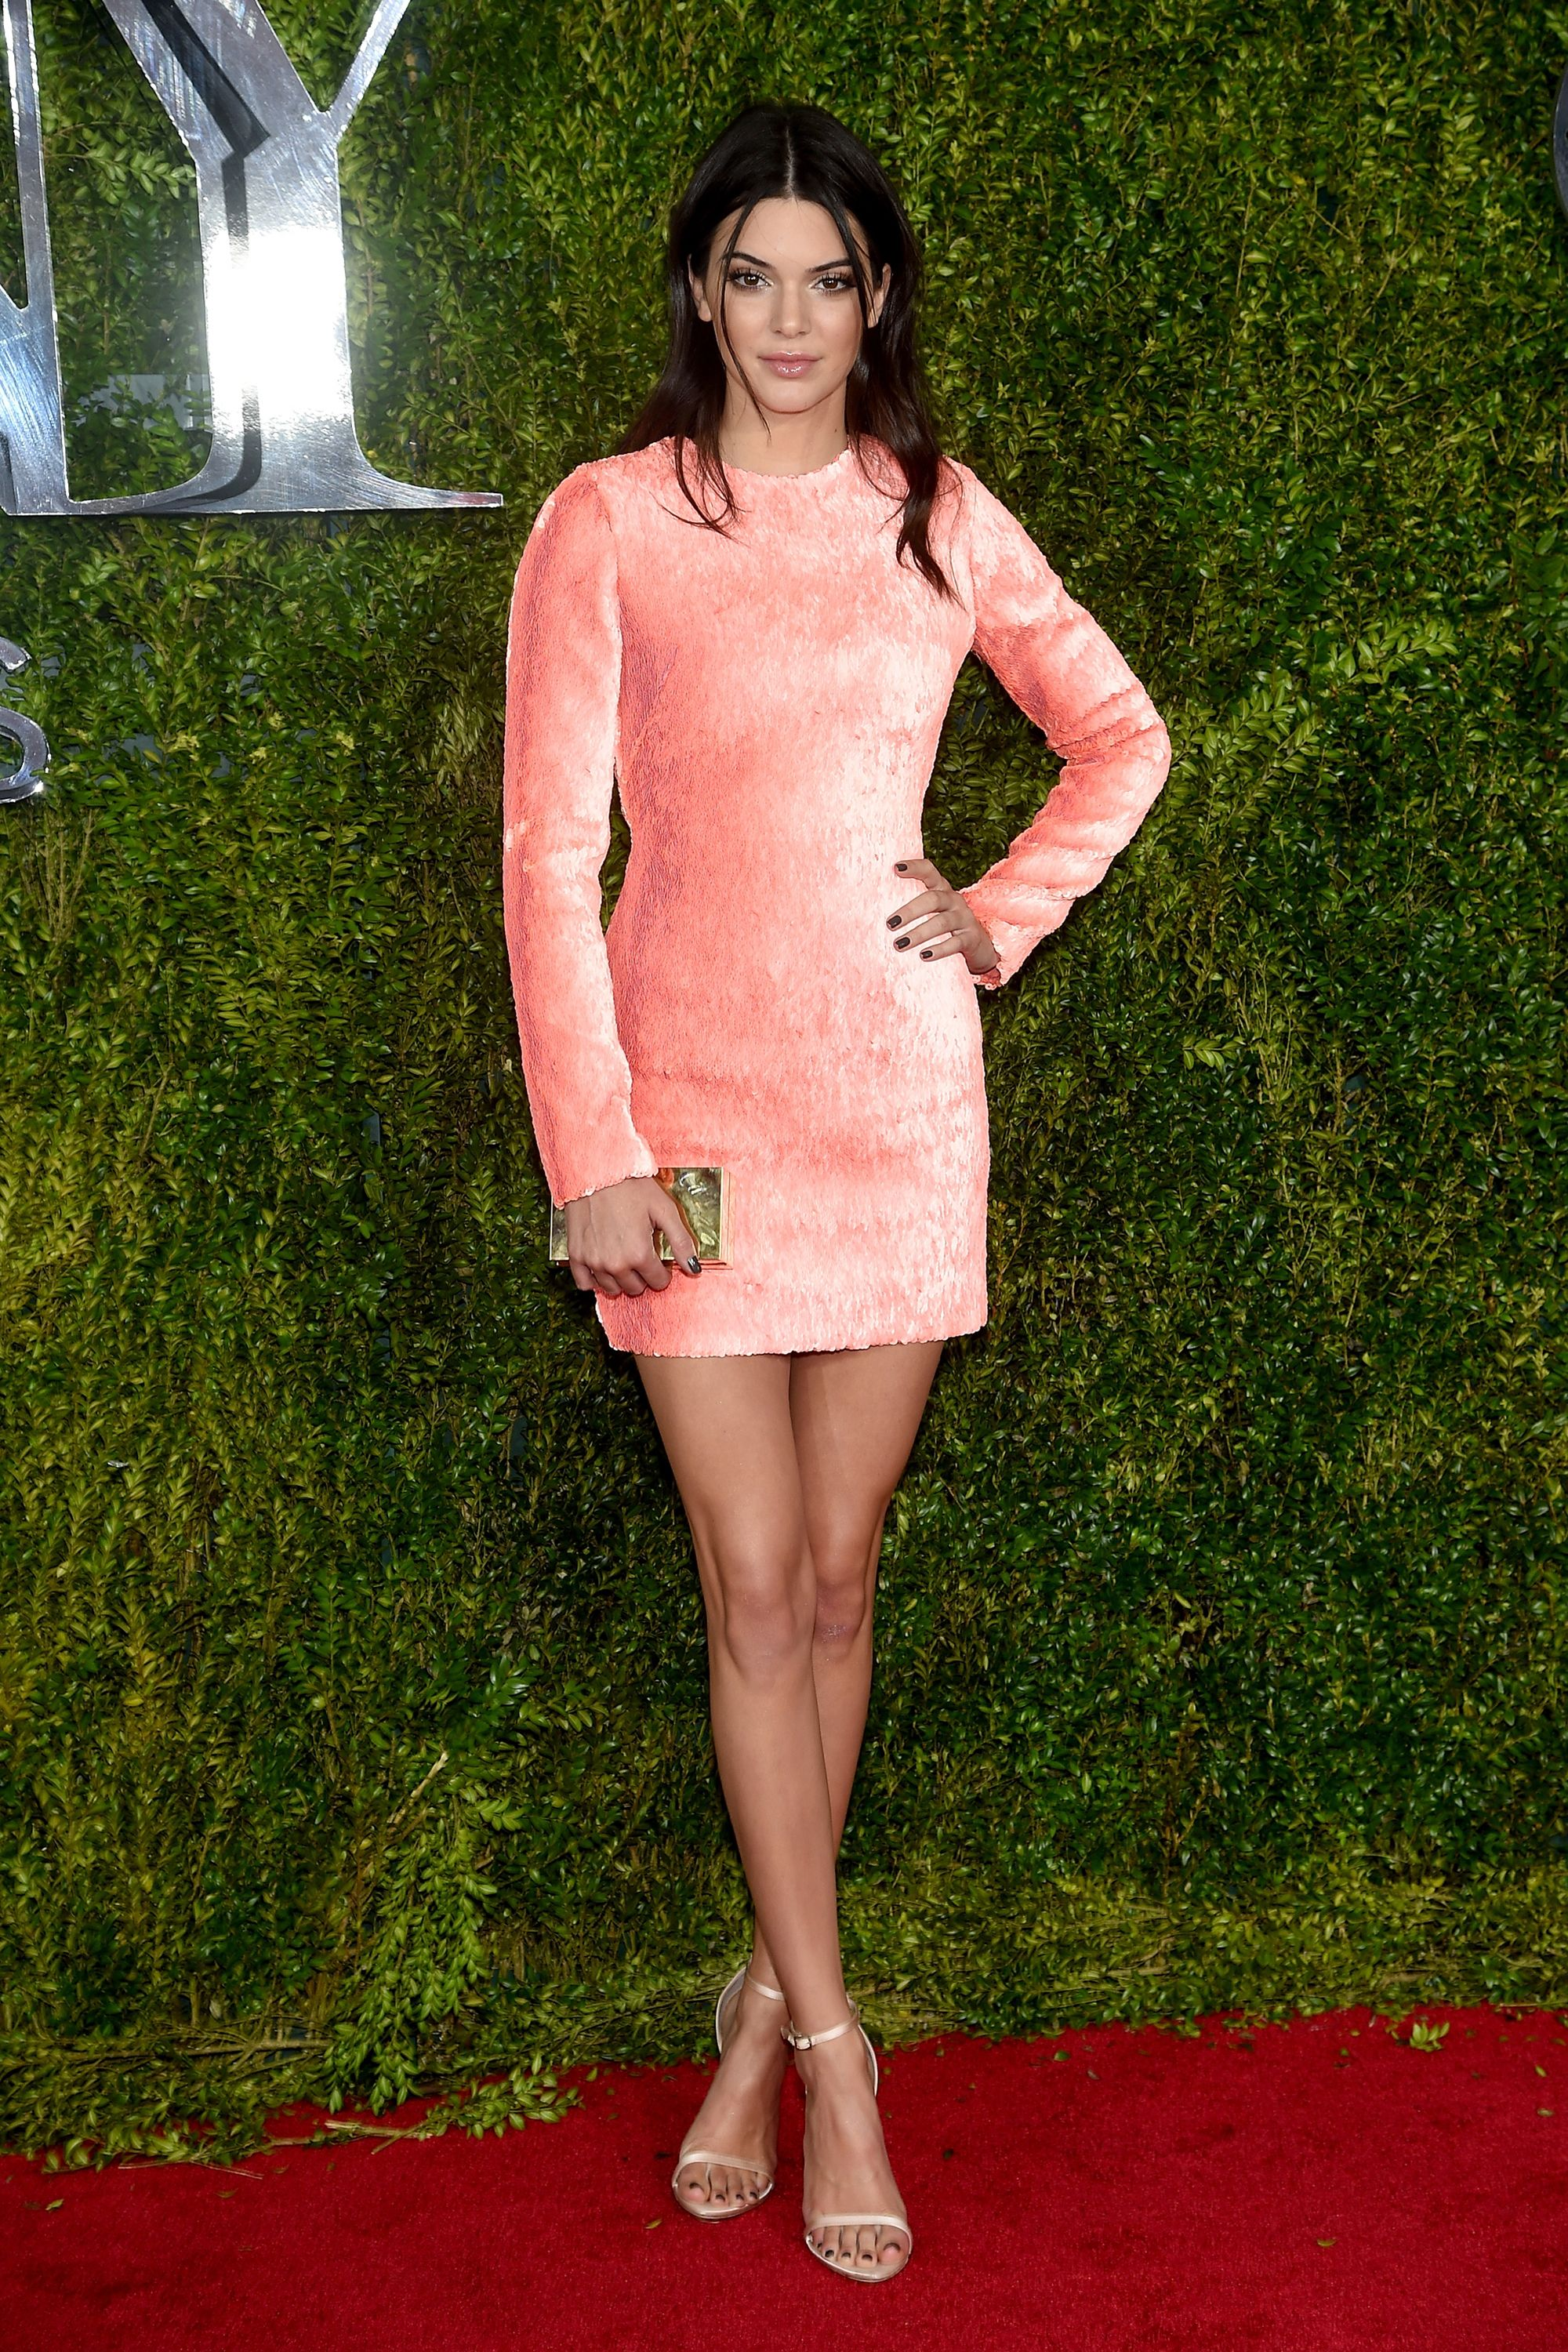 NEW YORK, NY - JUNE 07:  Model Kendall Jenner attends the 2015 Tony Awards  at Radio City Music Hall on June 7, 2015 in New York City.  (Photo by Dimitrios Kambouris/Getty Images for Tony Awards Productions)